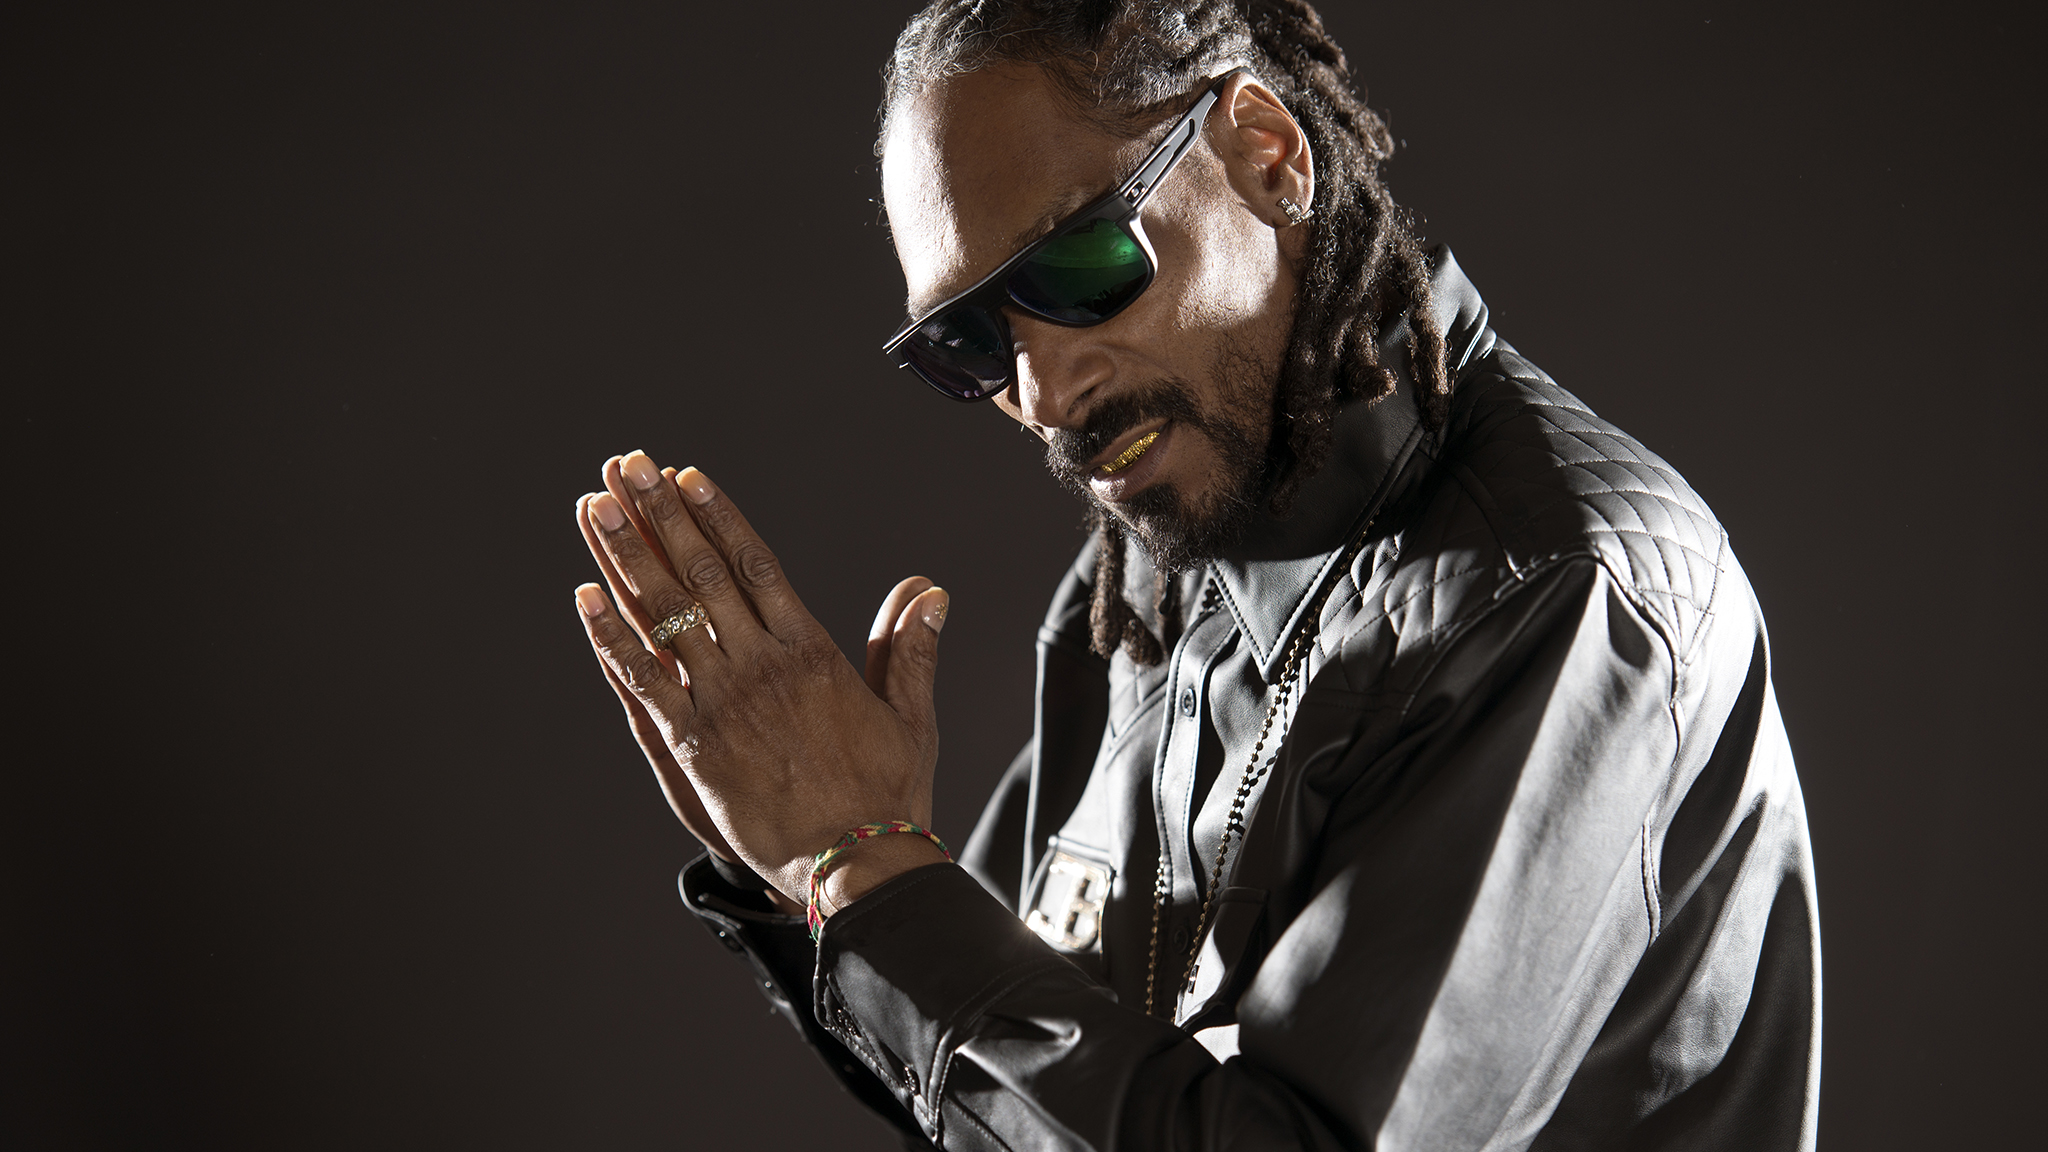 Legendary rapper Snoop Dogg will make his X Games debut at the X Games Aspen 2015 music festival Jan. 23-25.